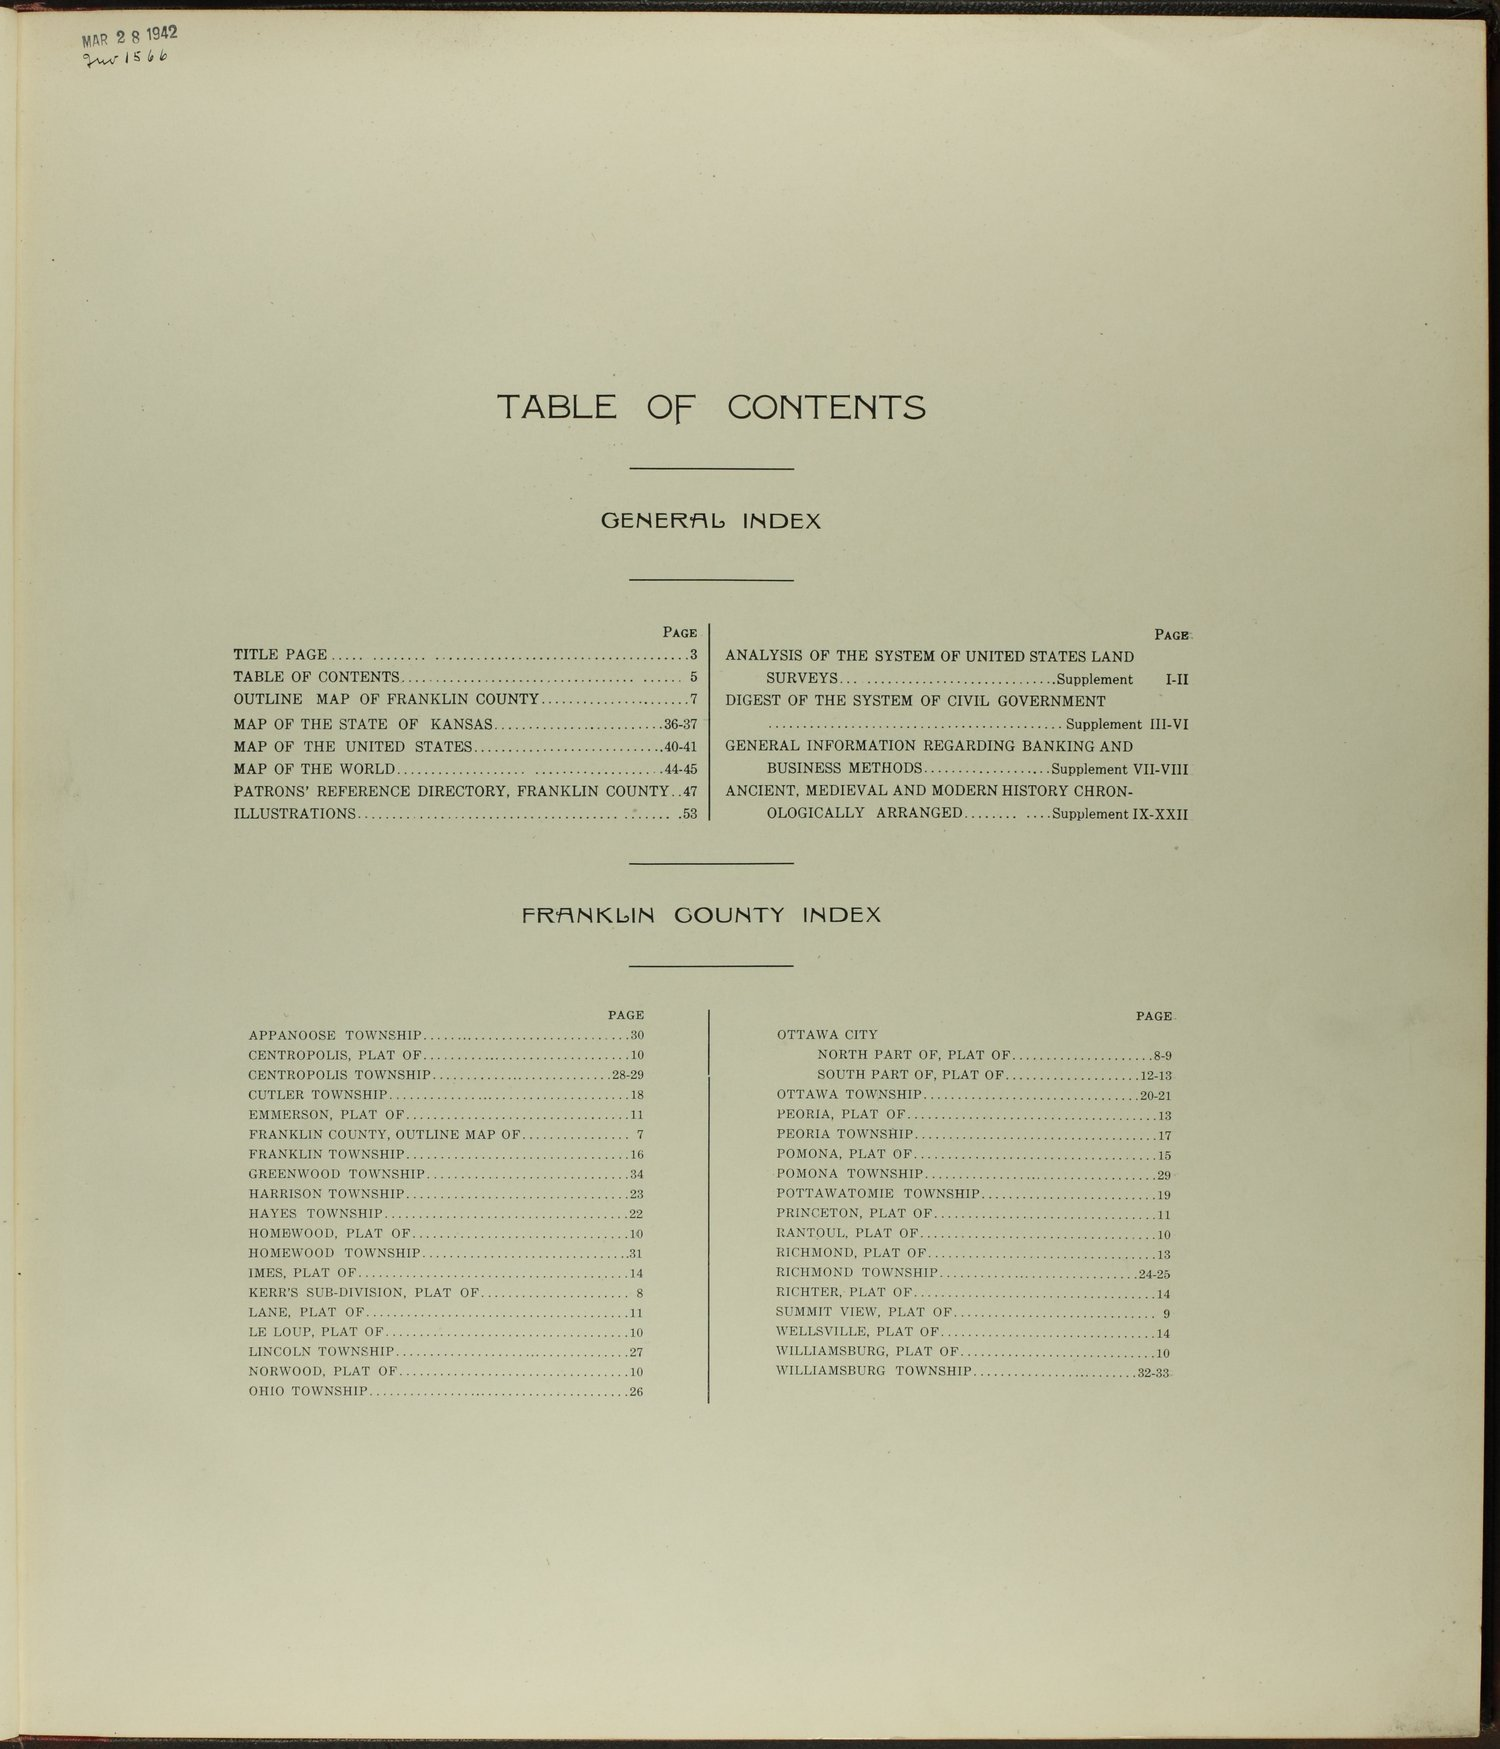 Standard atlas of Franklin County, Kansas - Table of Contents